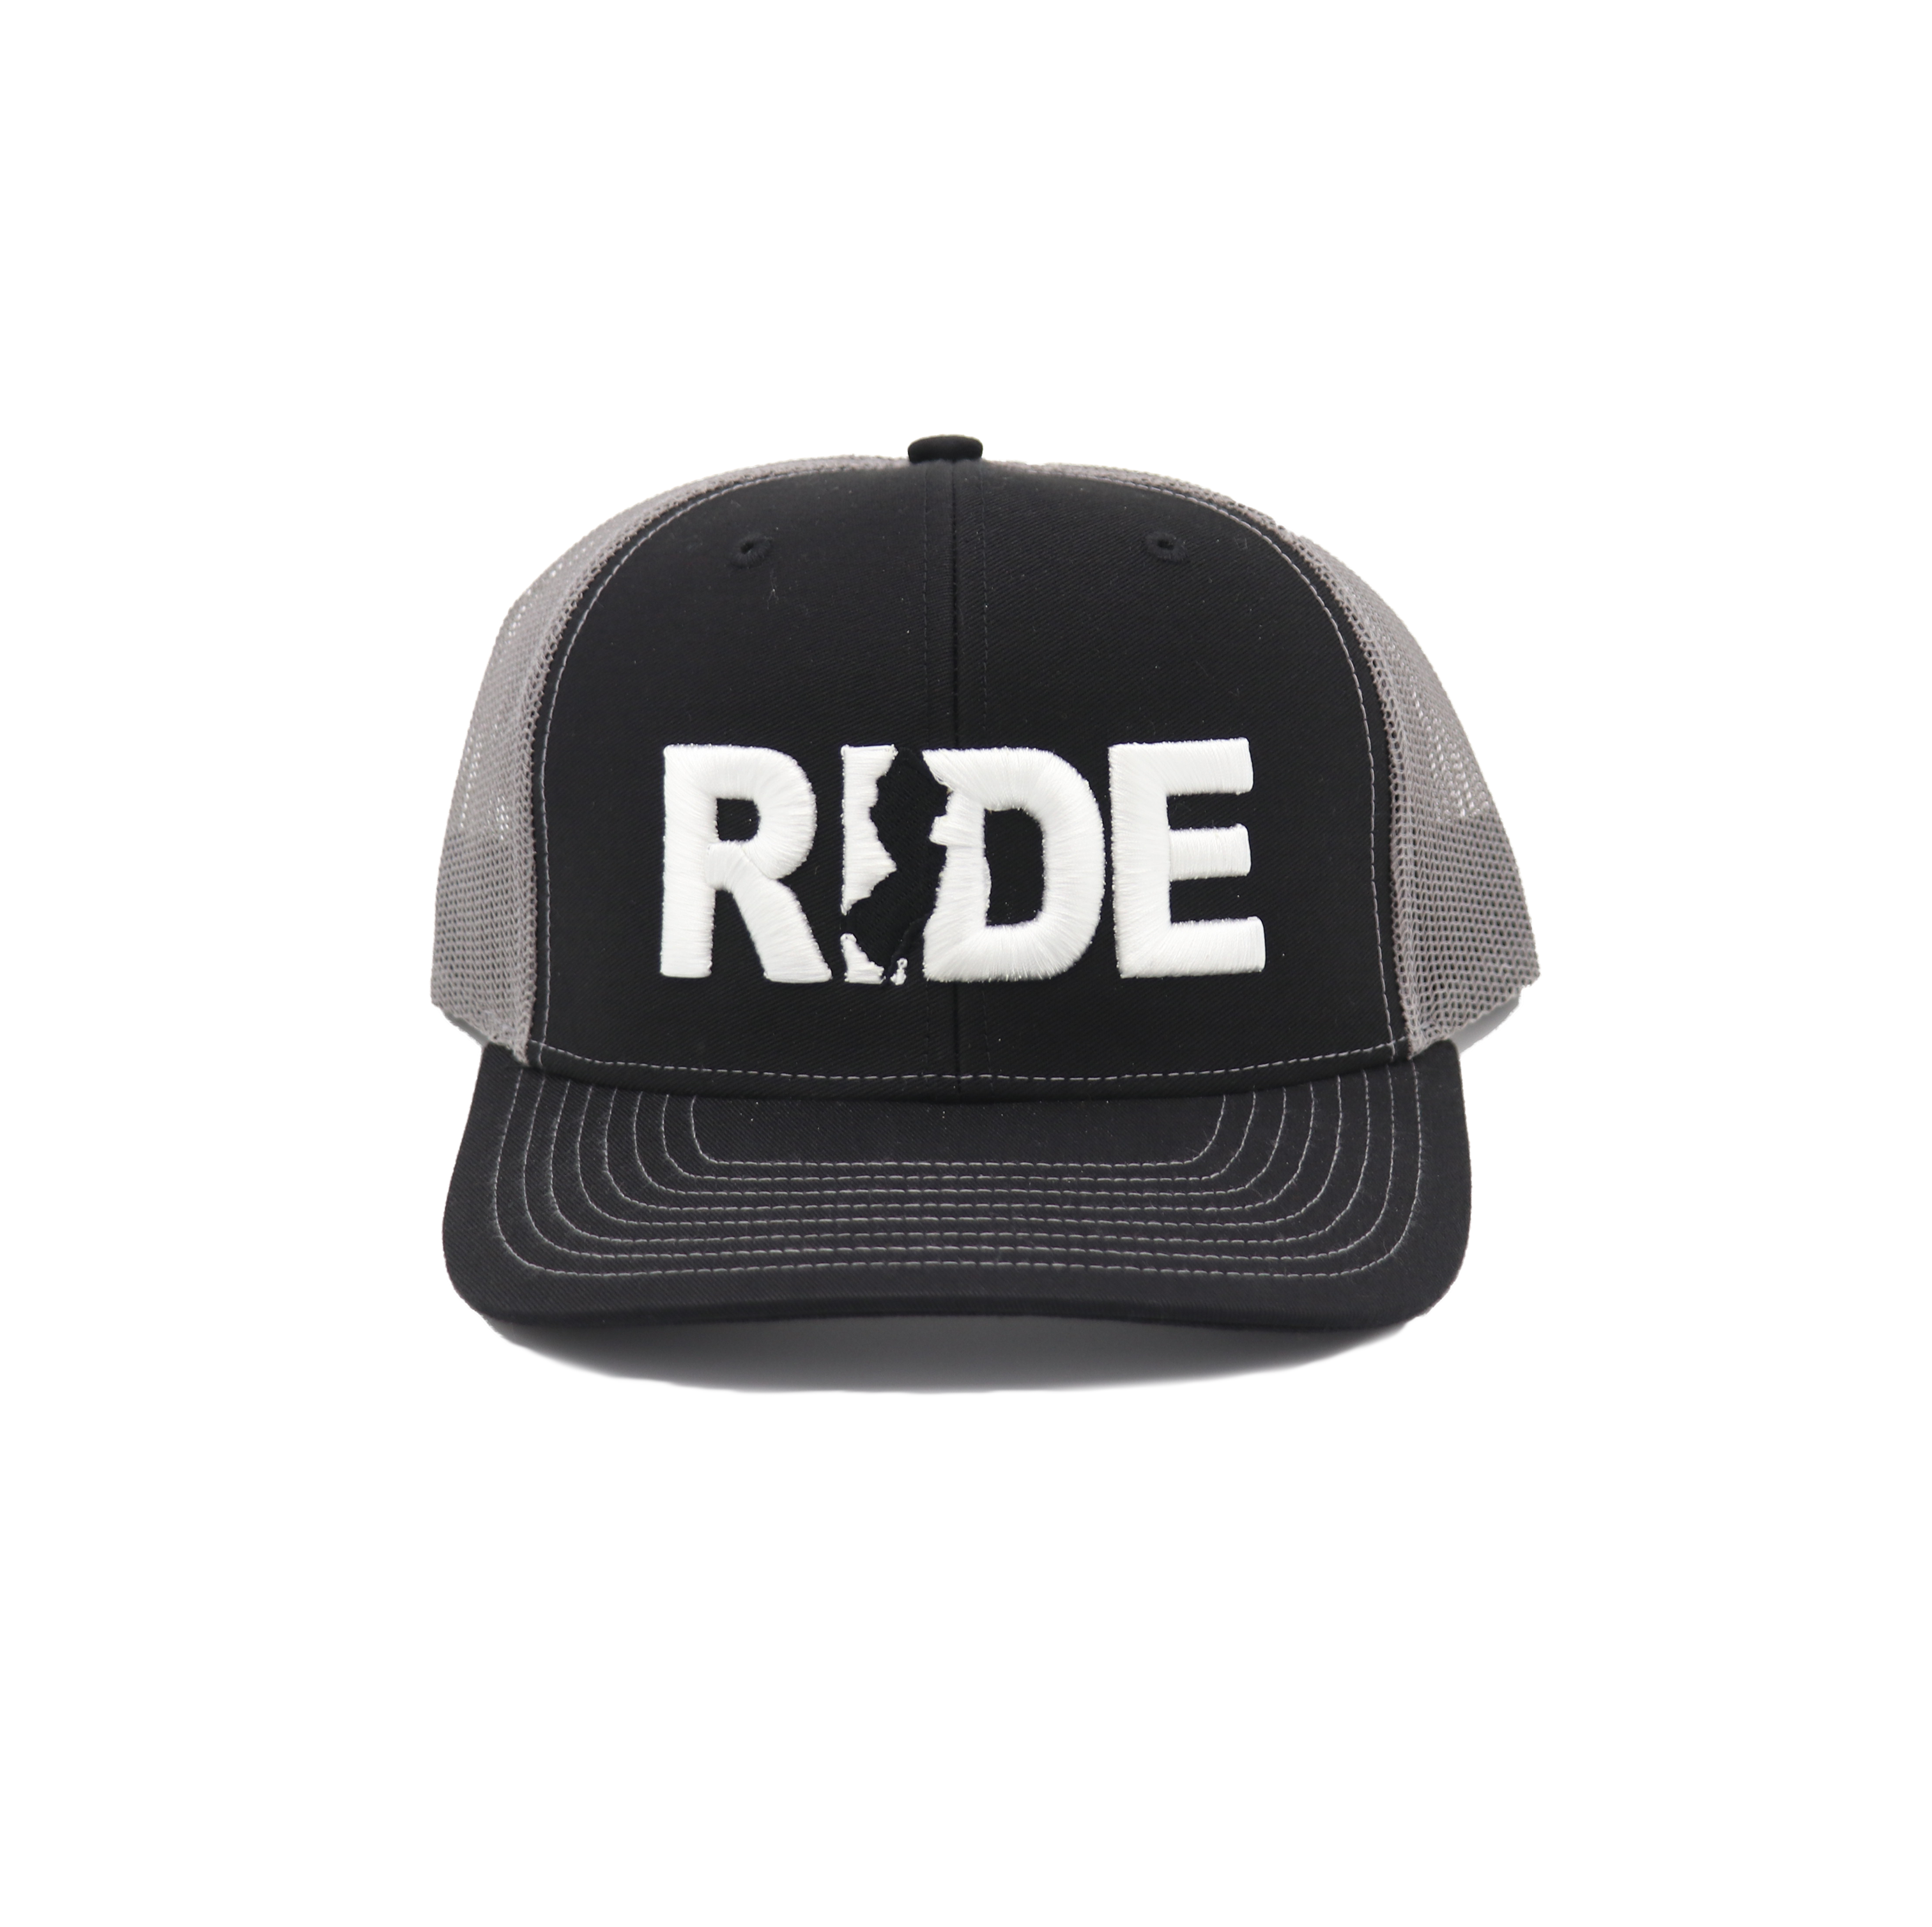 Ride New Jersey Classic Embroidered Snapback Trucker Hat Black/White